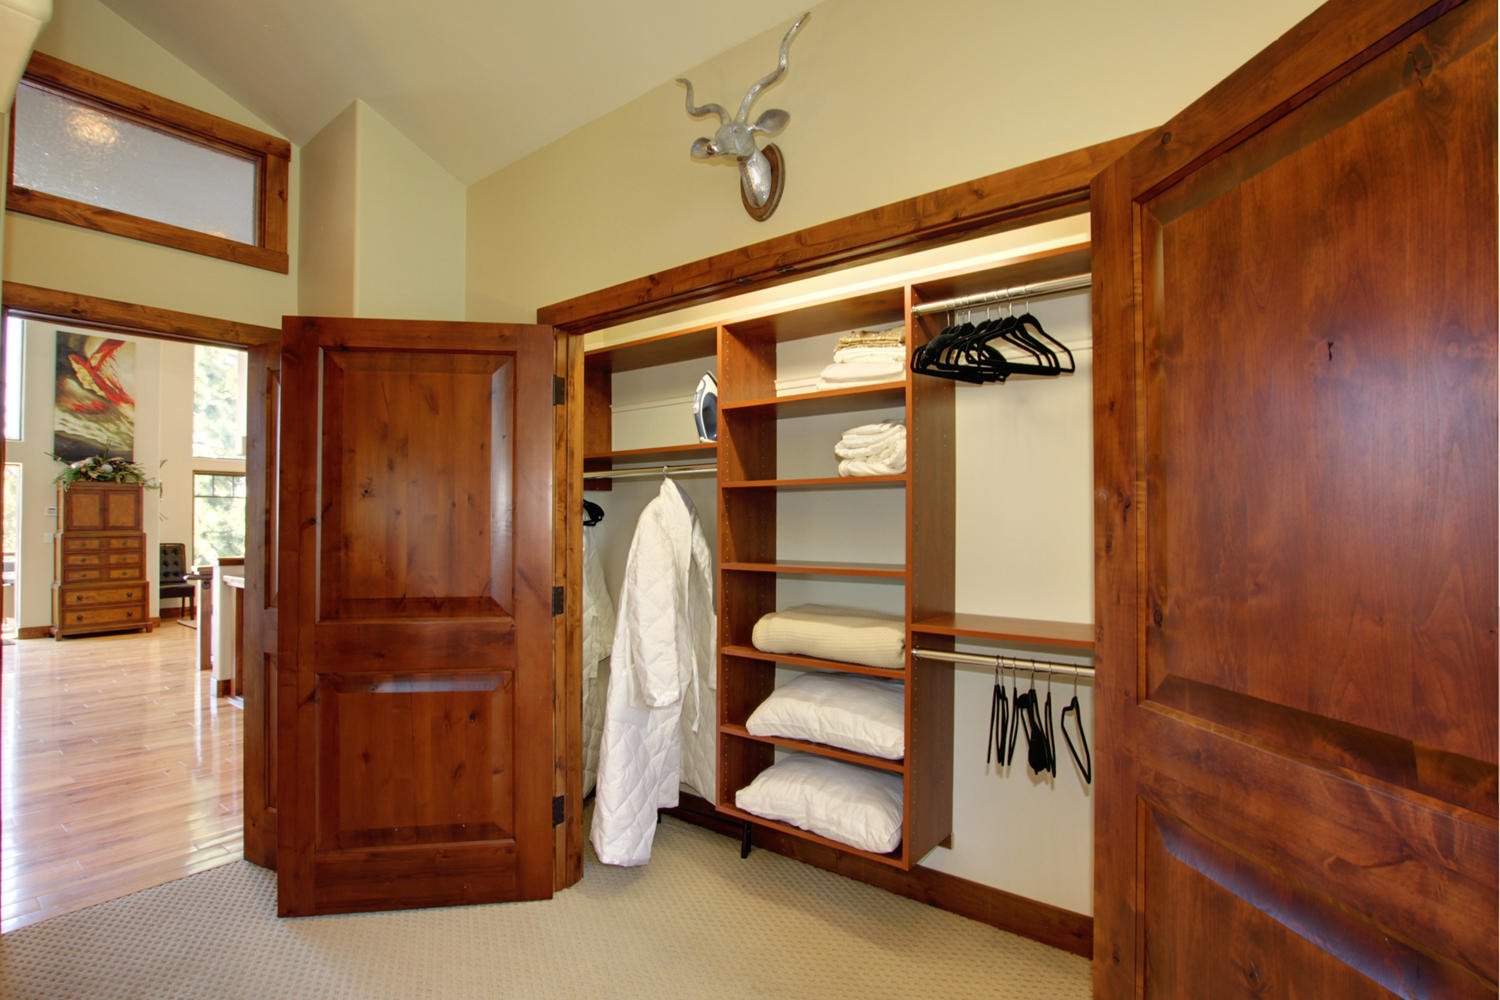 Bedroom Wall Closet Designs Fascinating Wall Closet Design